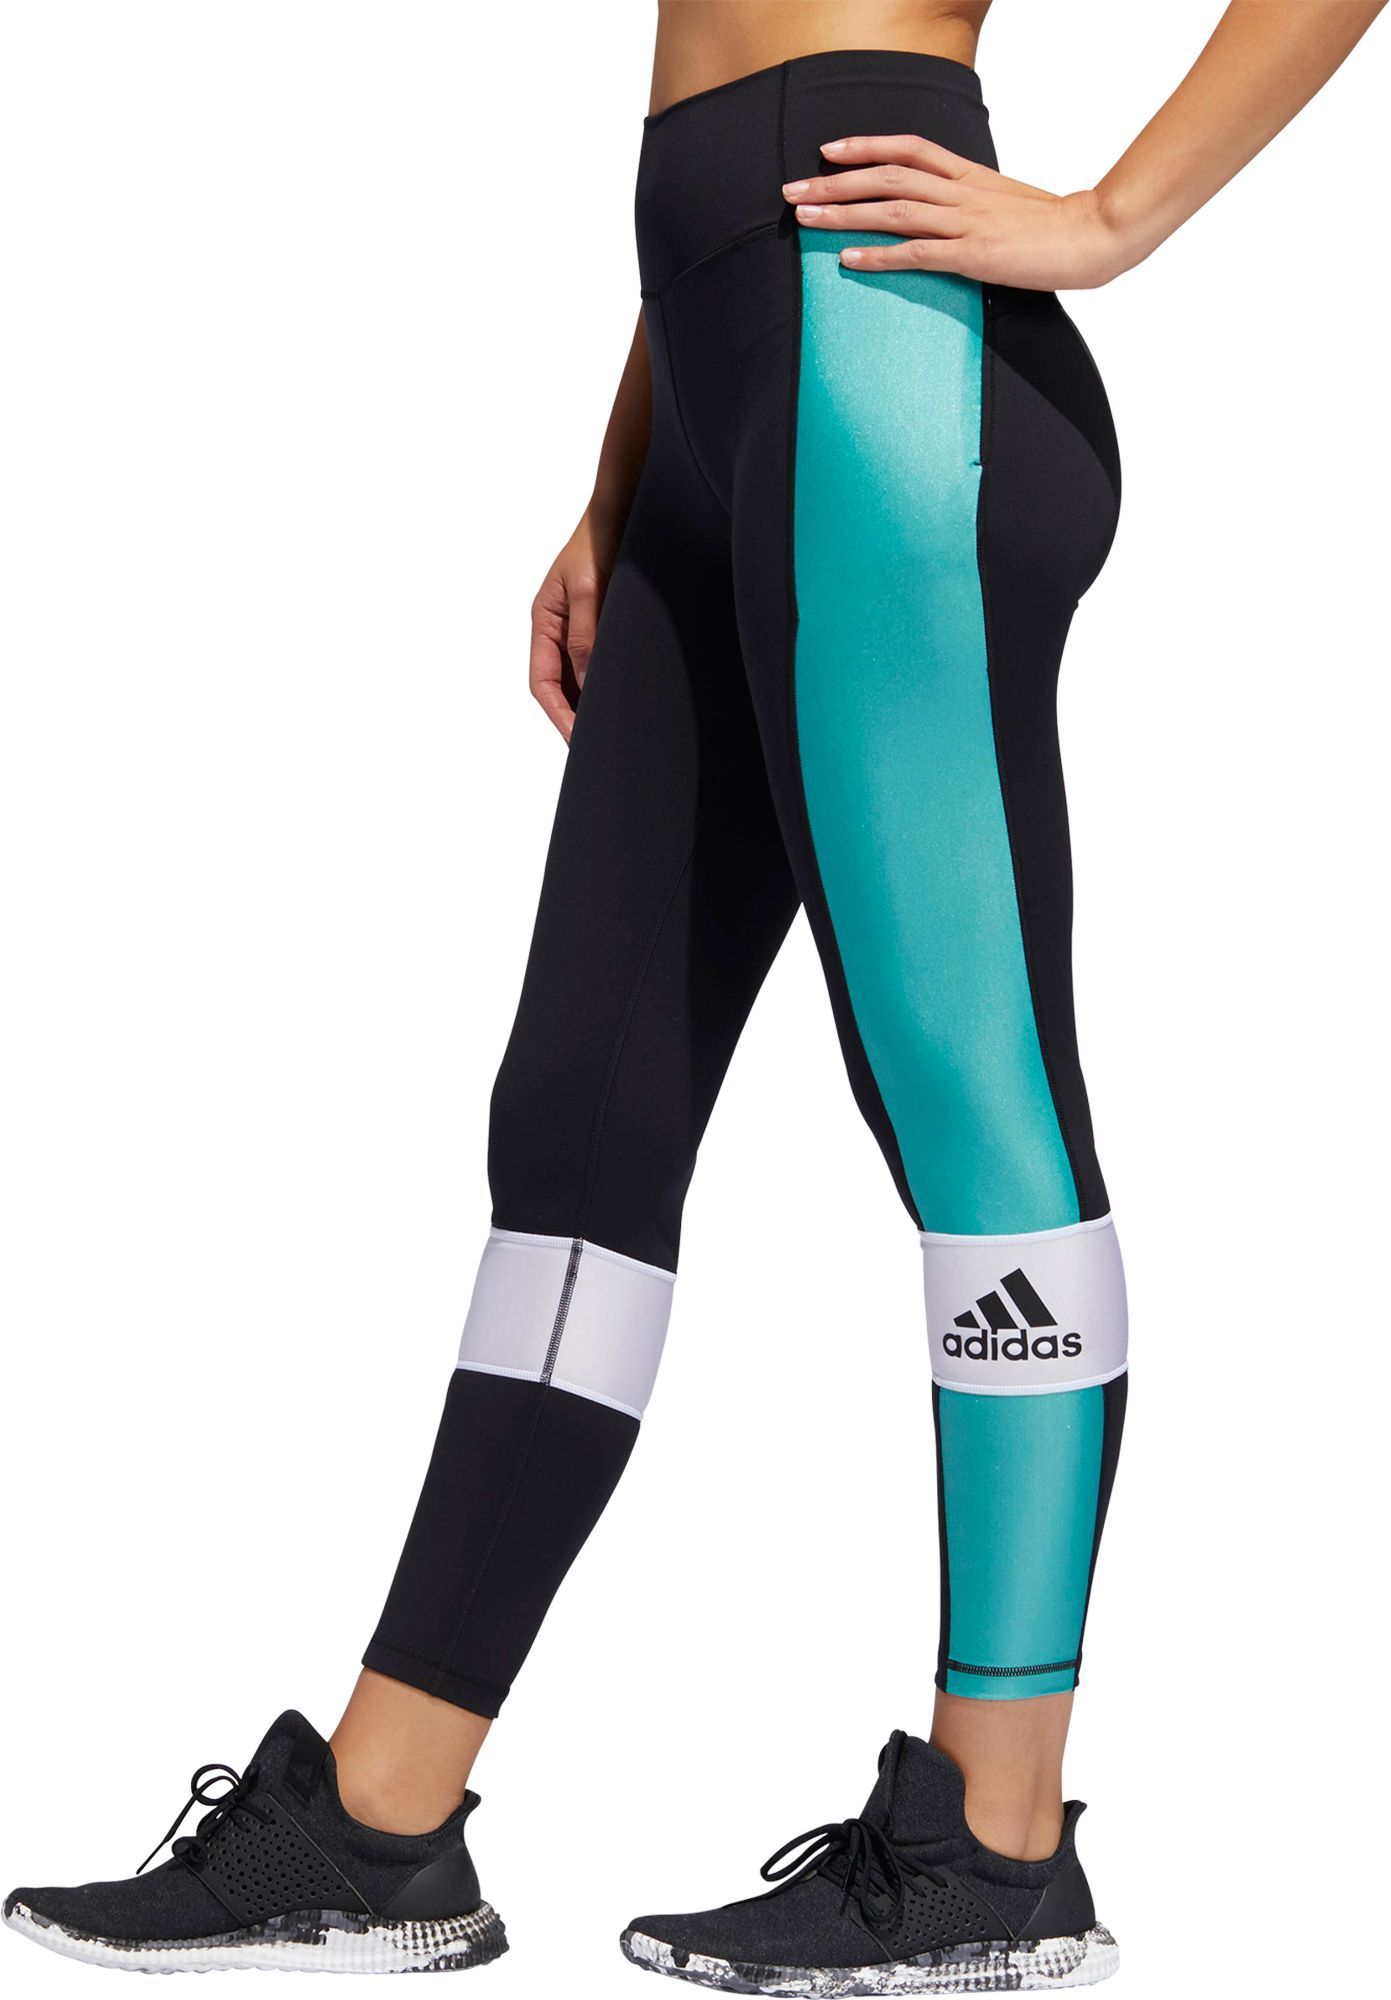 27cfc173034 adidas Women s Believe This High Rise Sport Block 7 8 Tights in 2019 ...